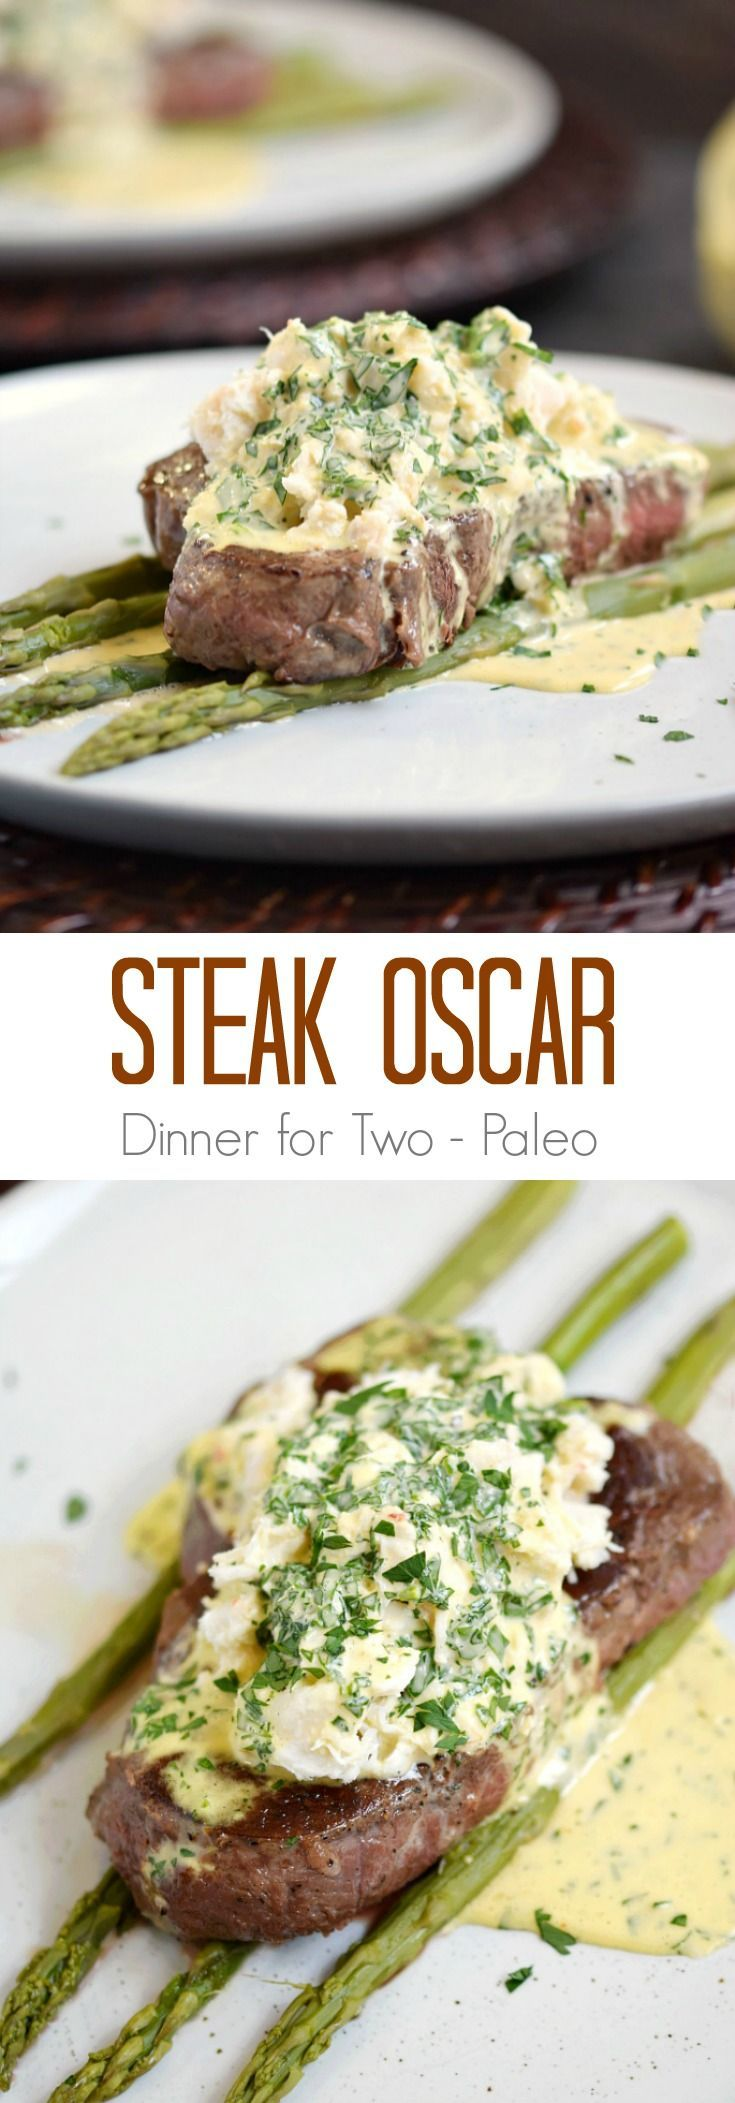 Are you looking for the perfect Date Night meal Steak Oscar will impress even the pickiest dinner companion, and it doesn't require a culinary degree! cookingwithcurls.com Dinner for Two | Paleo